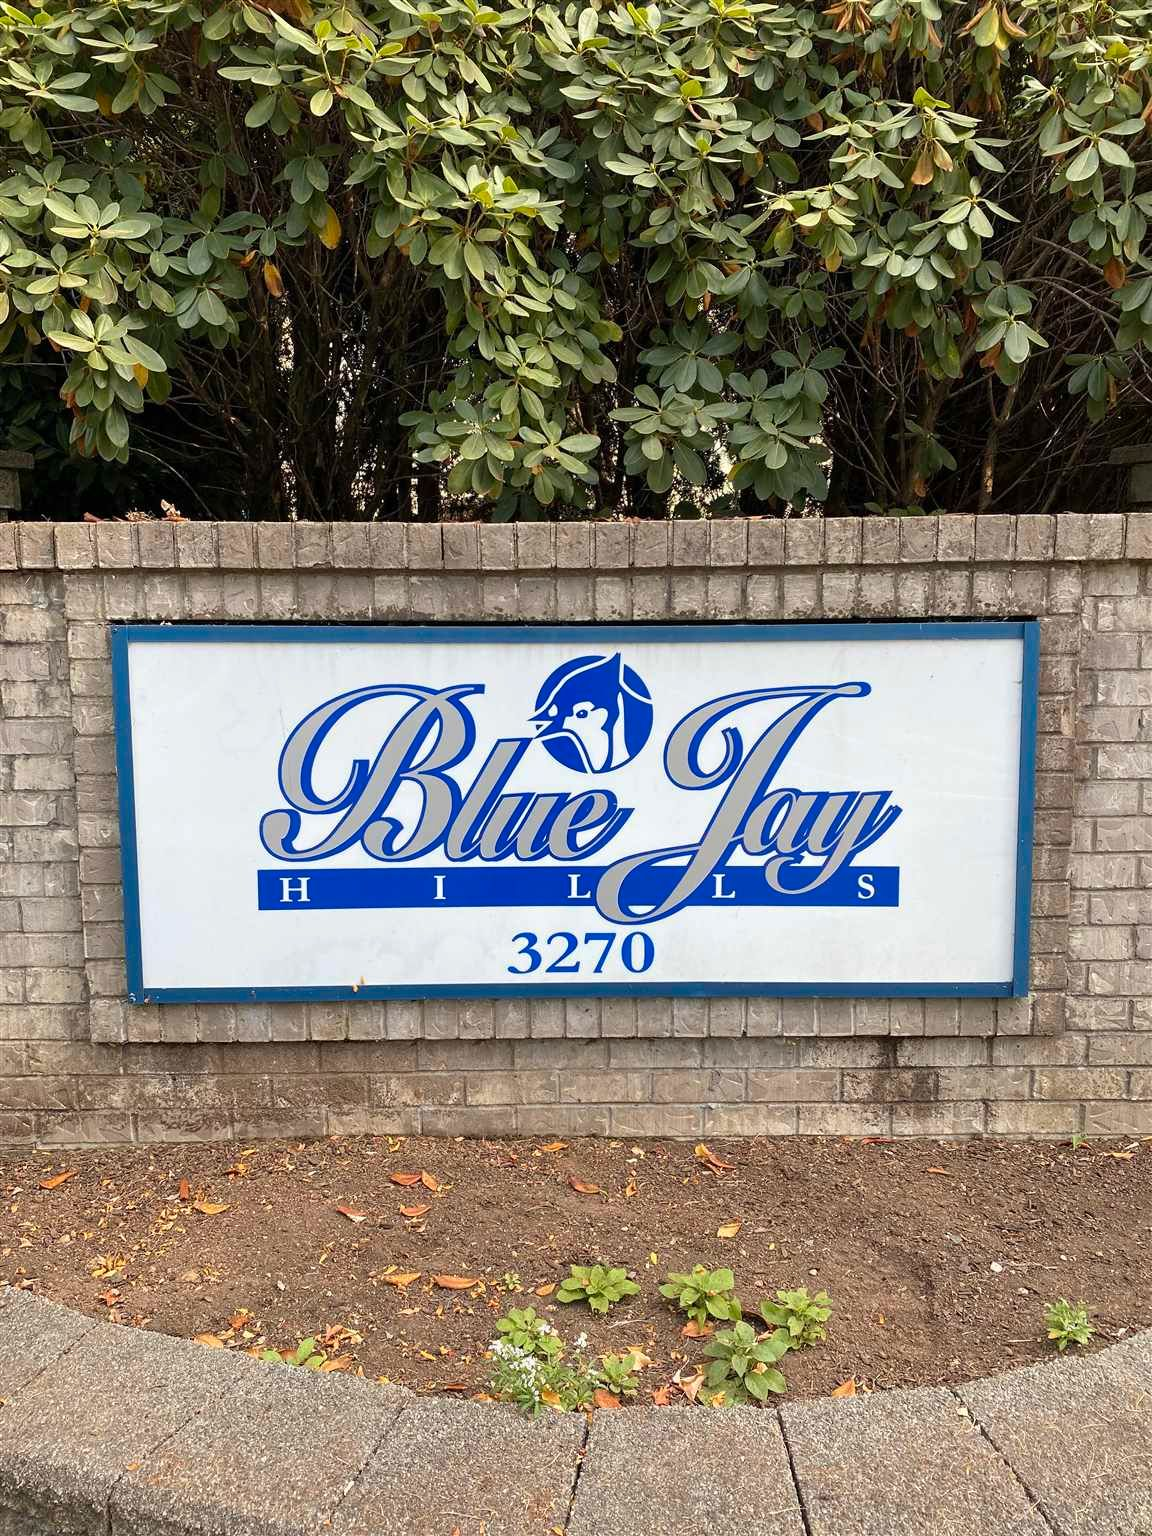 """Main Photo: 26 3270 BLUE JAY Street in Abbotsford: Abbotsford West Townhouse for sale in """"Blue Jay Hills"""" : MLS®# R2606551"""